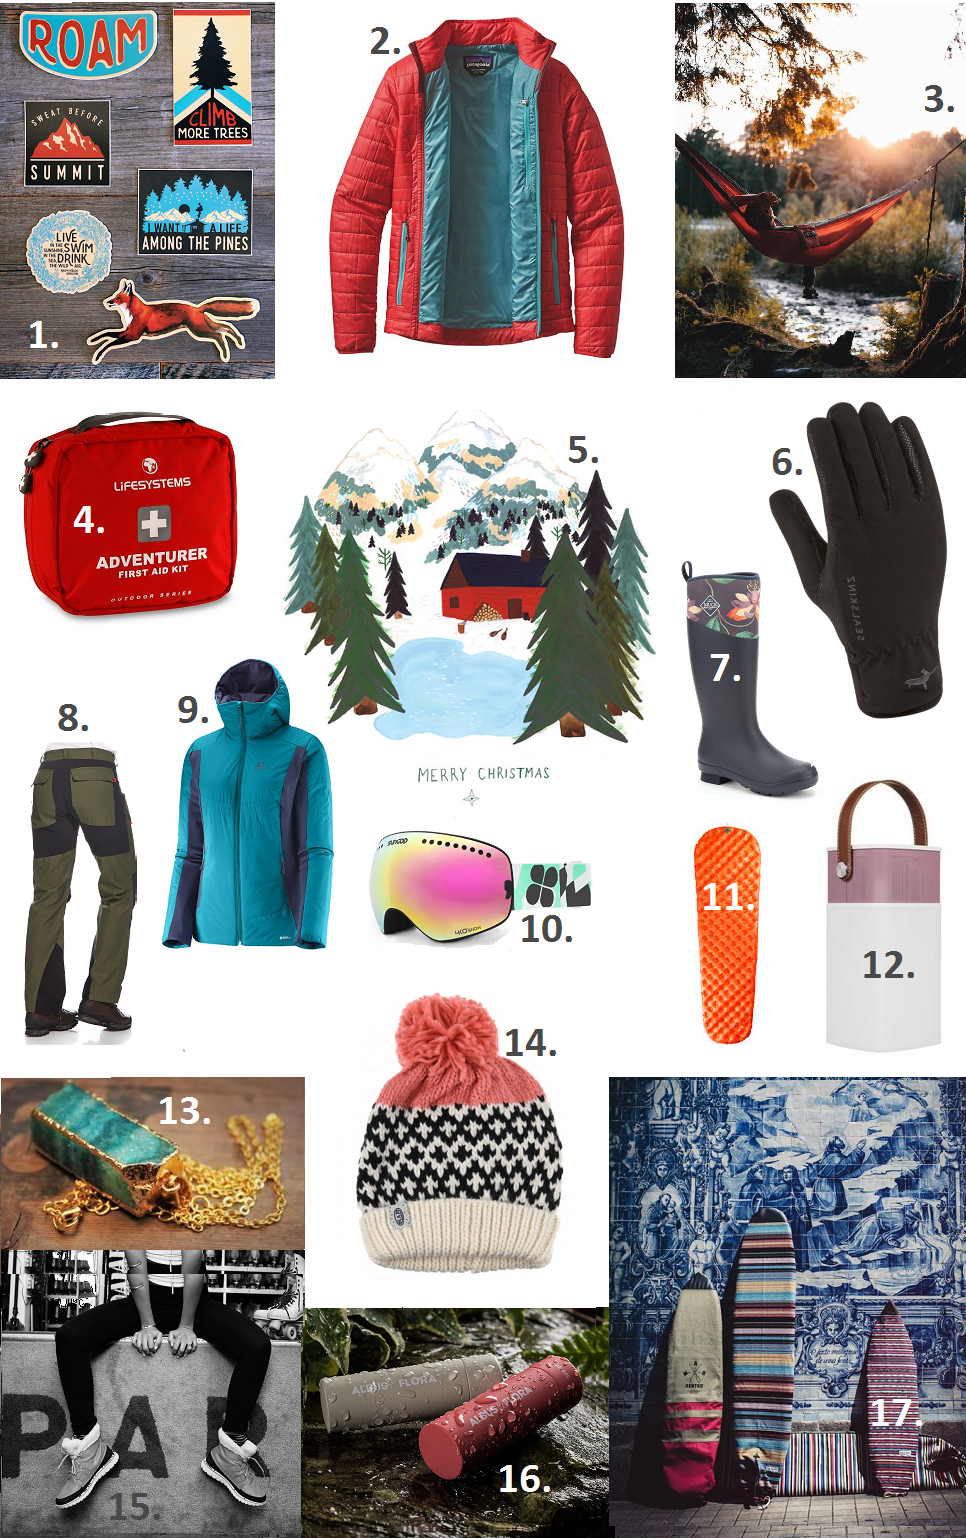 The great big outdoorsy Christmas gift guide 2016